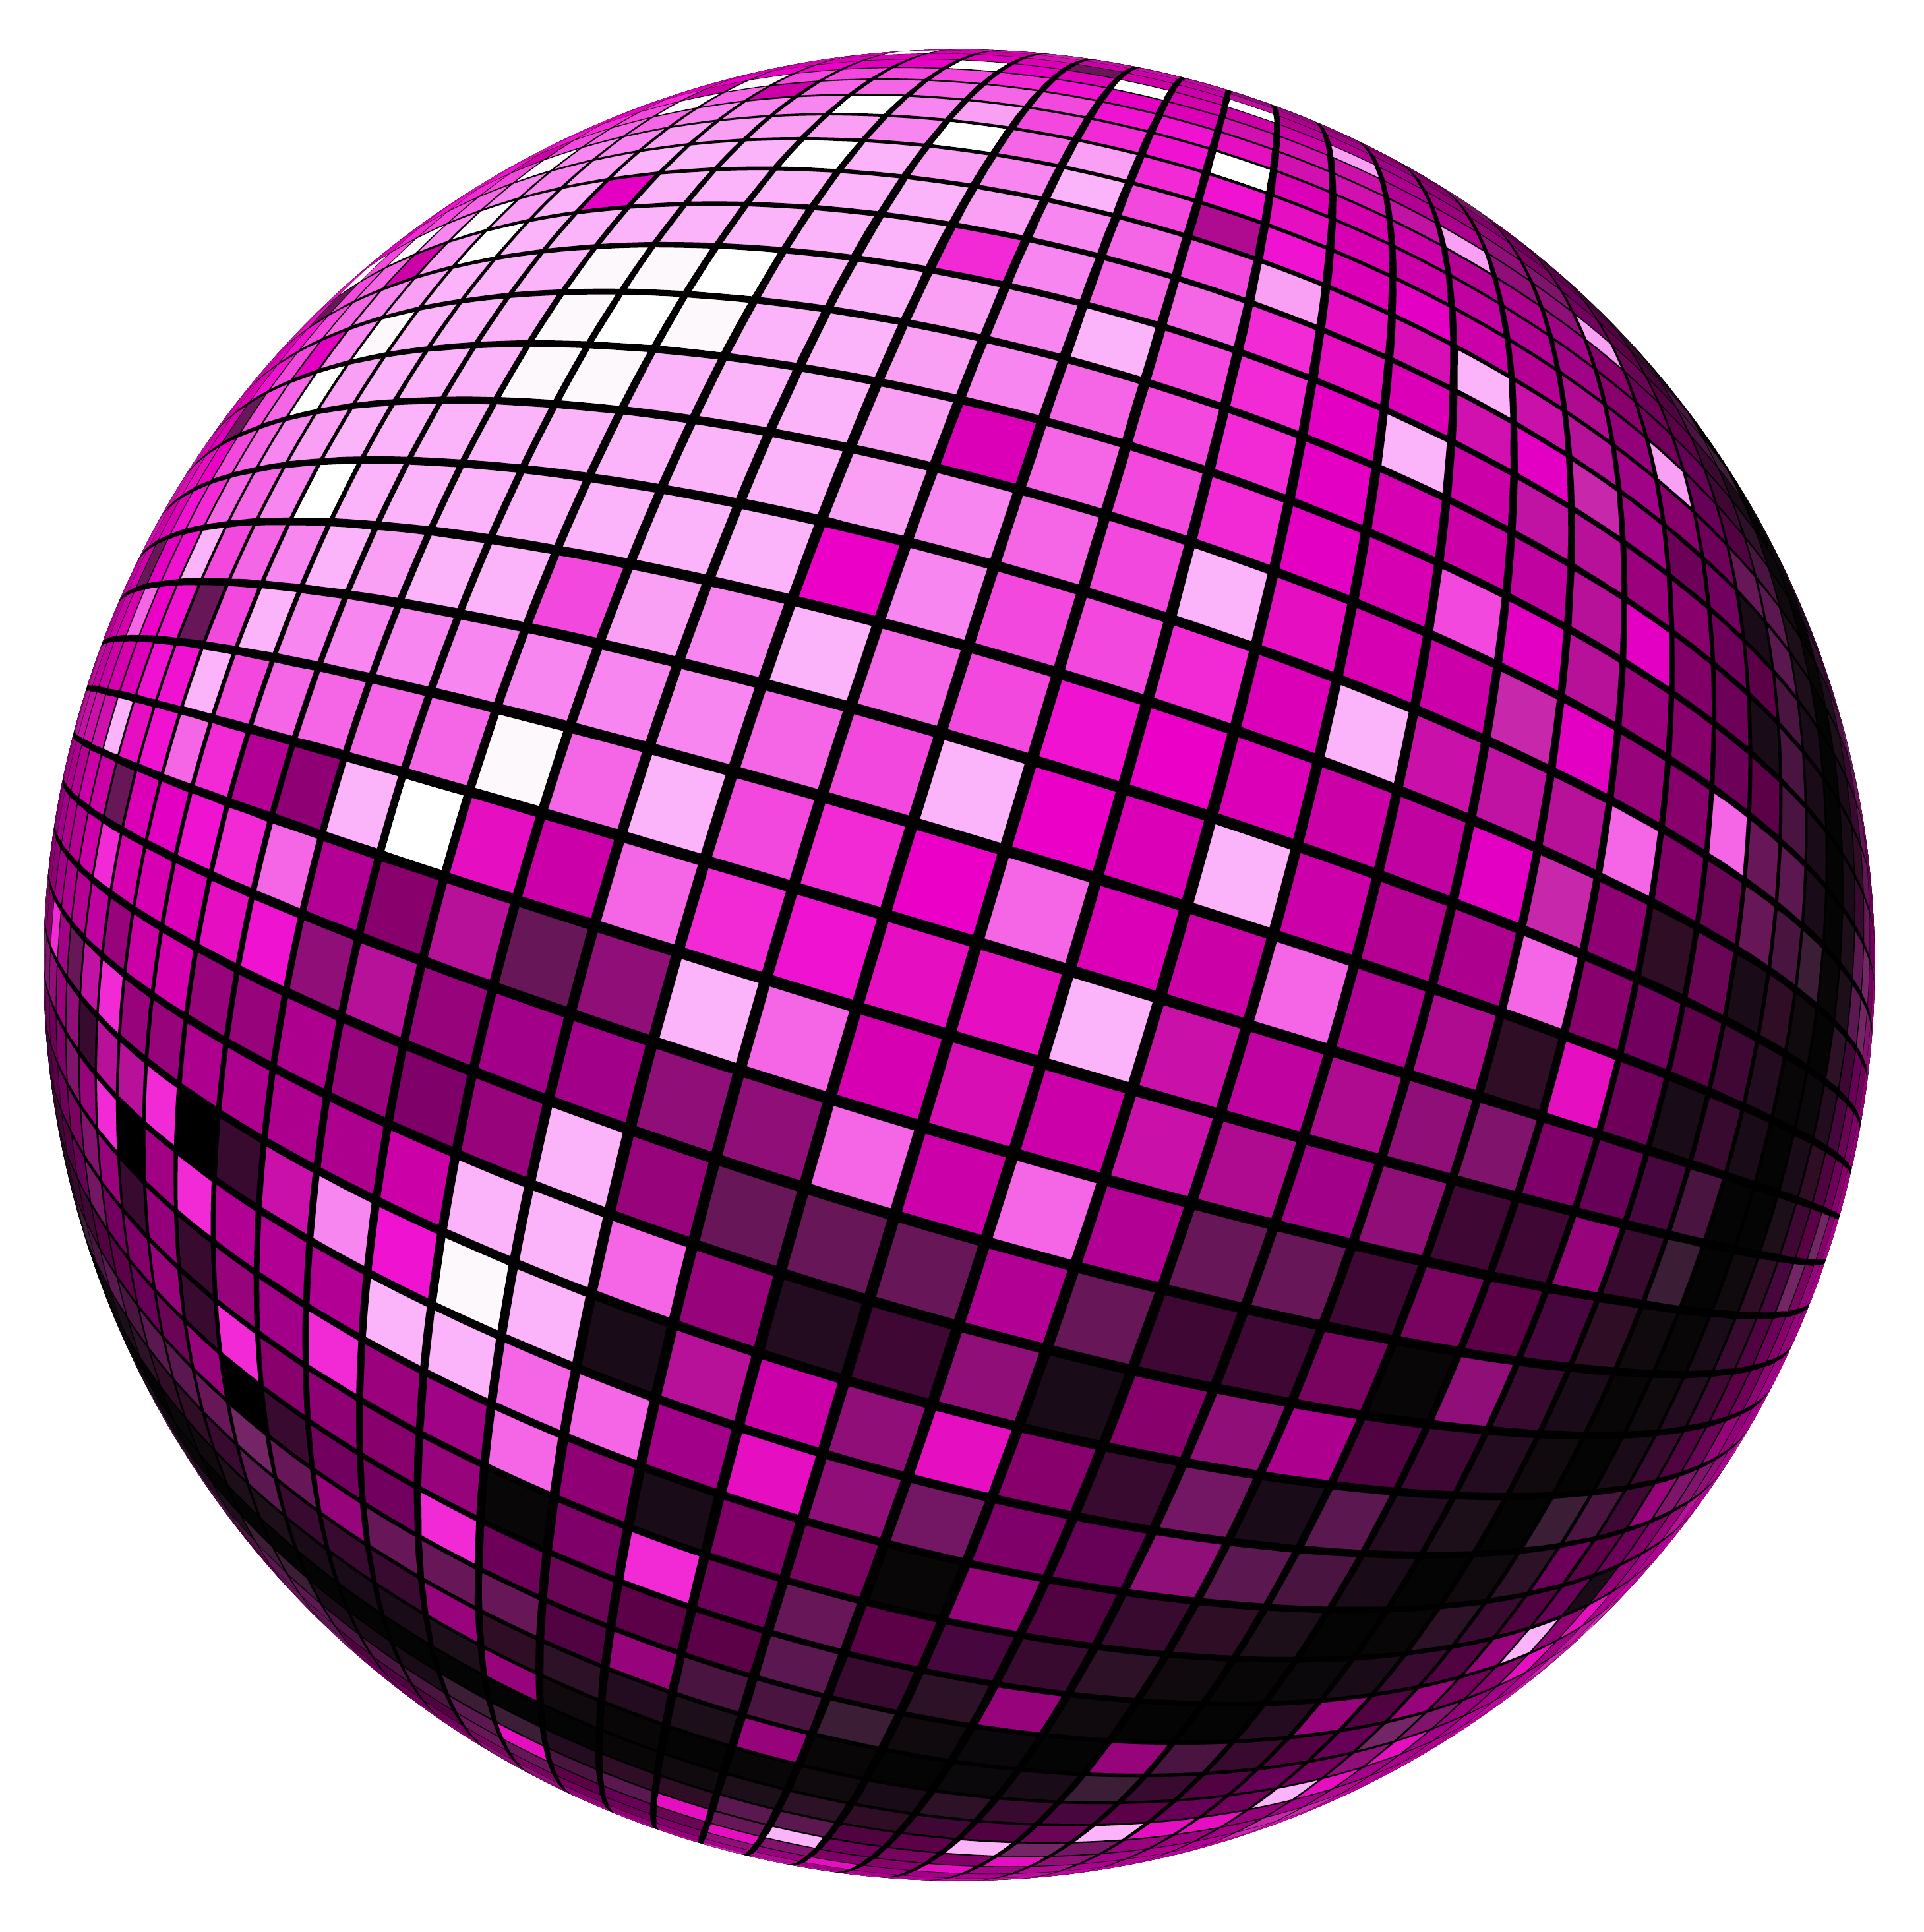 Mirror clipart hollywood. Disco ball png vector